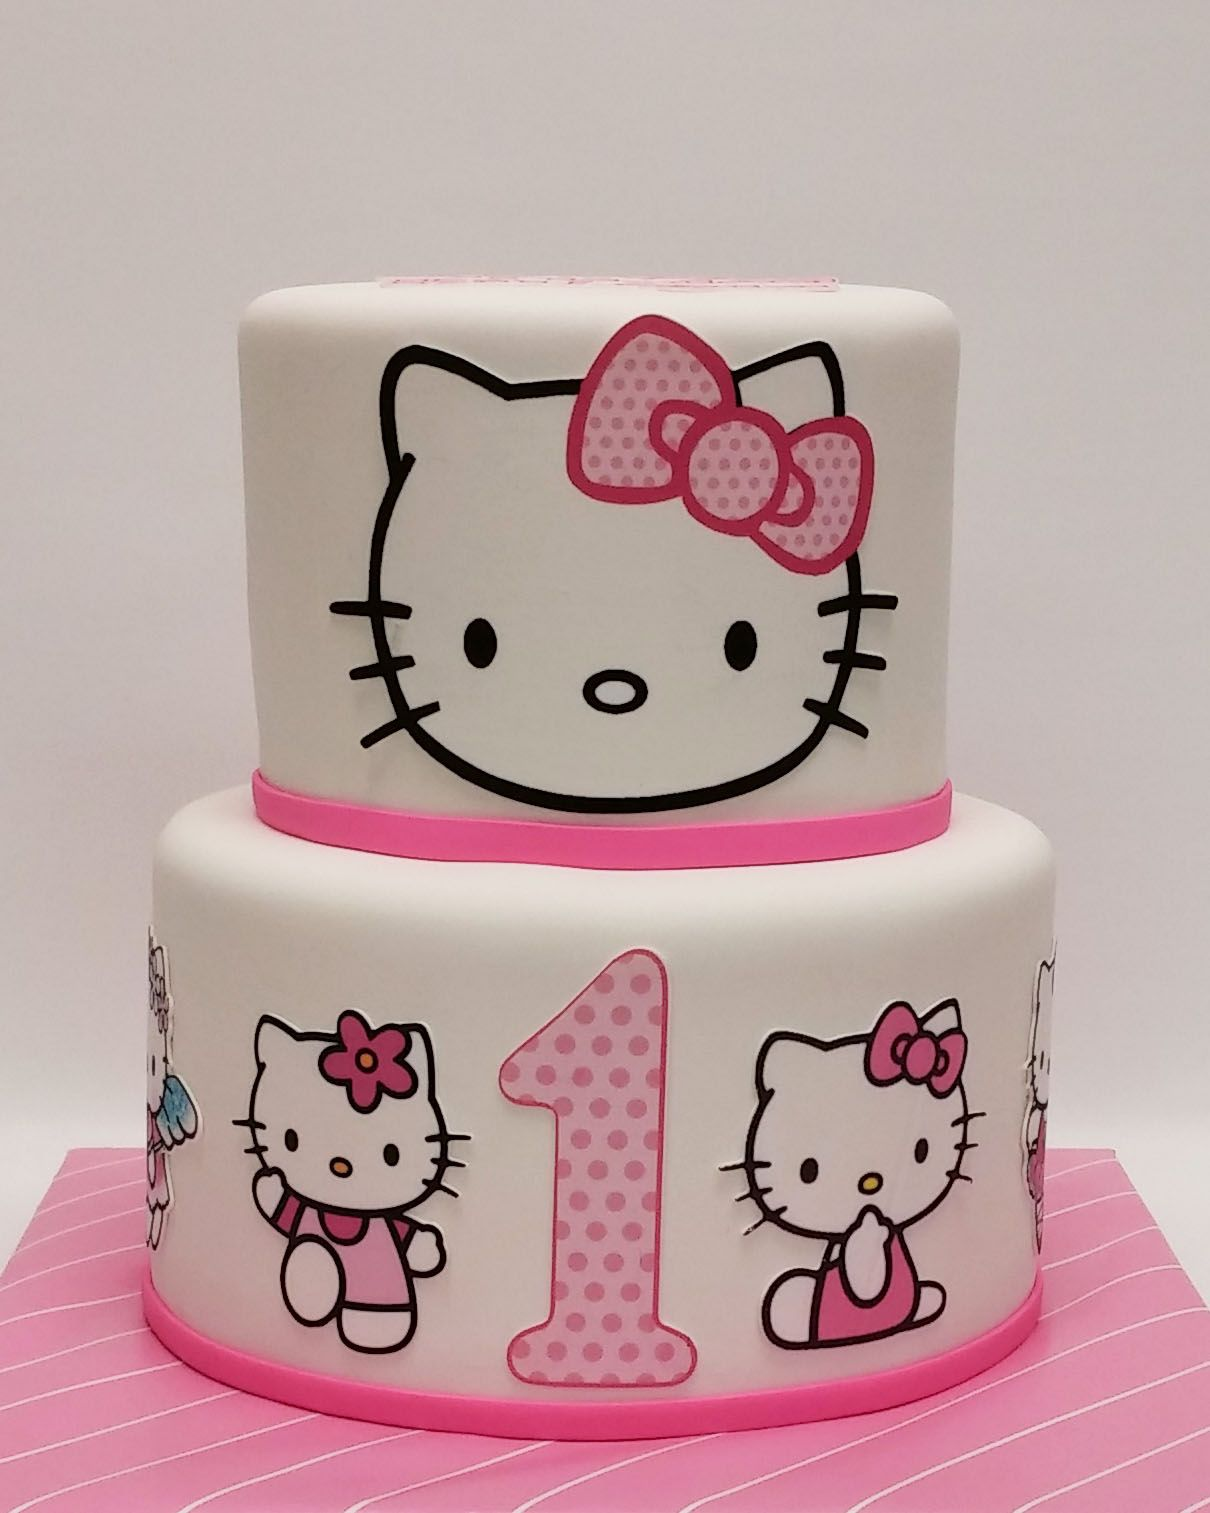 Pleasant Hello Kitty First Birthday Cake Hello Kitty Birthday Cake Funny Birthday Cards Online Inifodamsfinfo